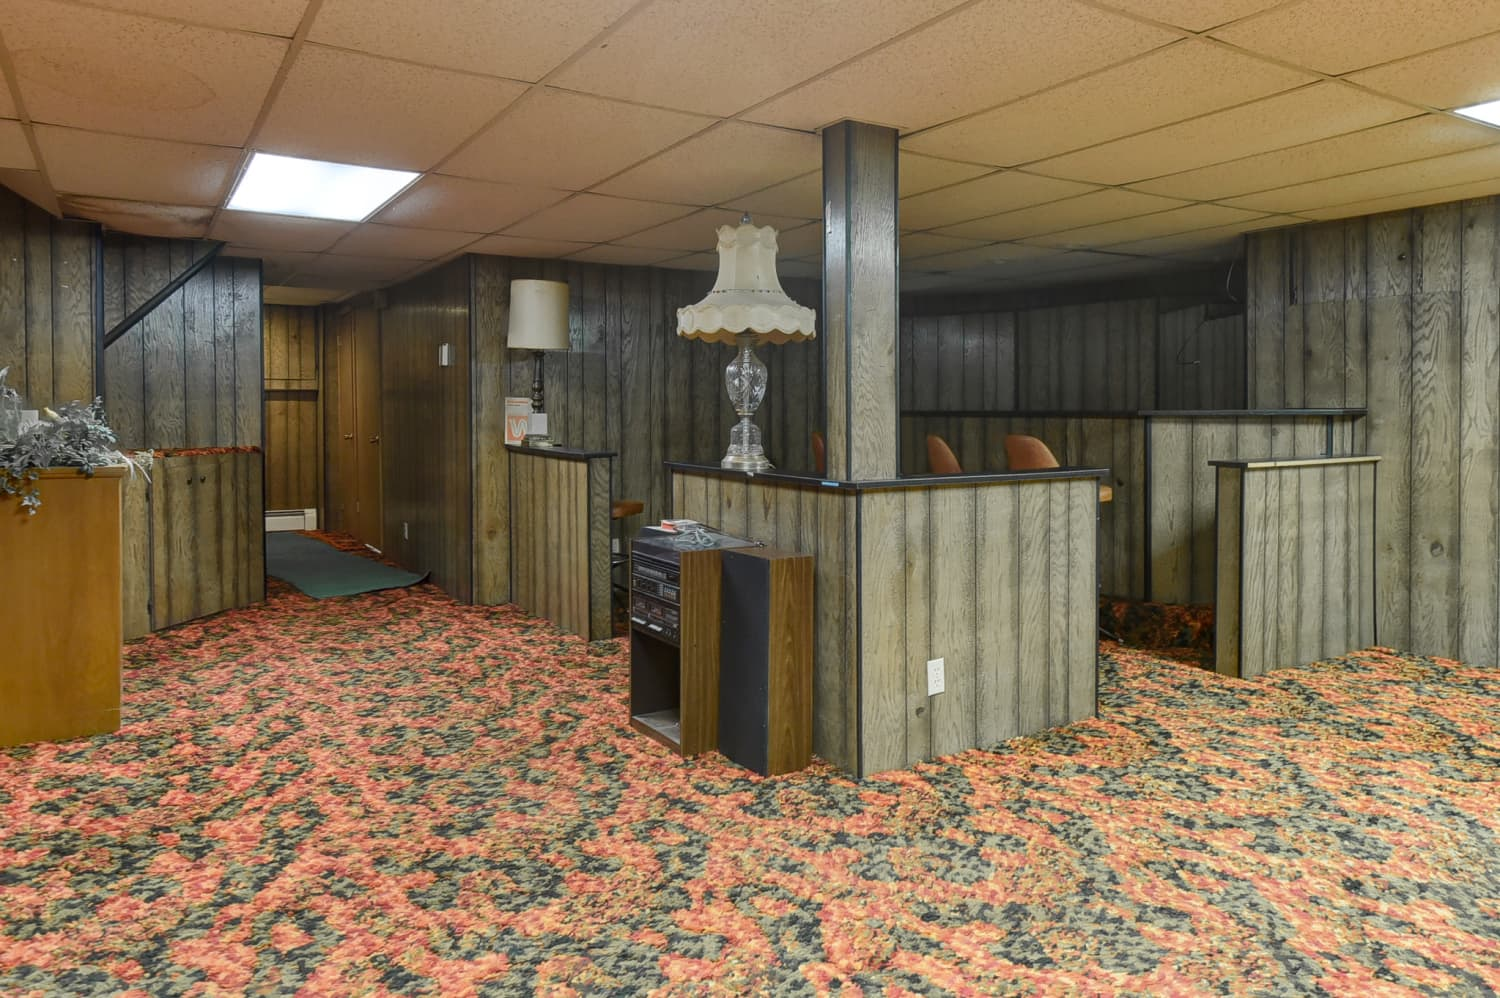 Hey, Don't You Dare Think About Renovating This Perfect '70s Basement in Nebraska